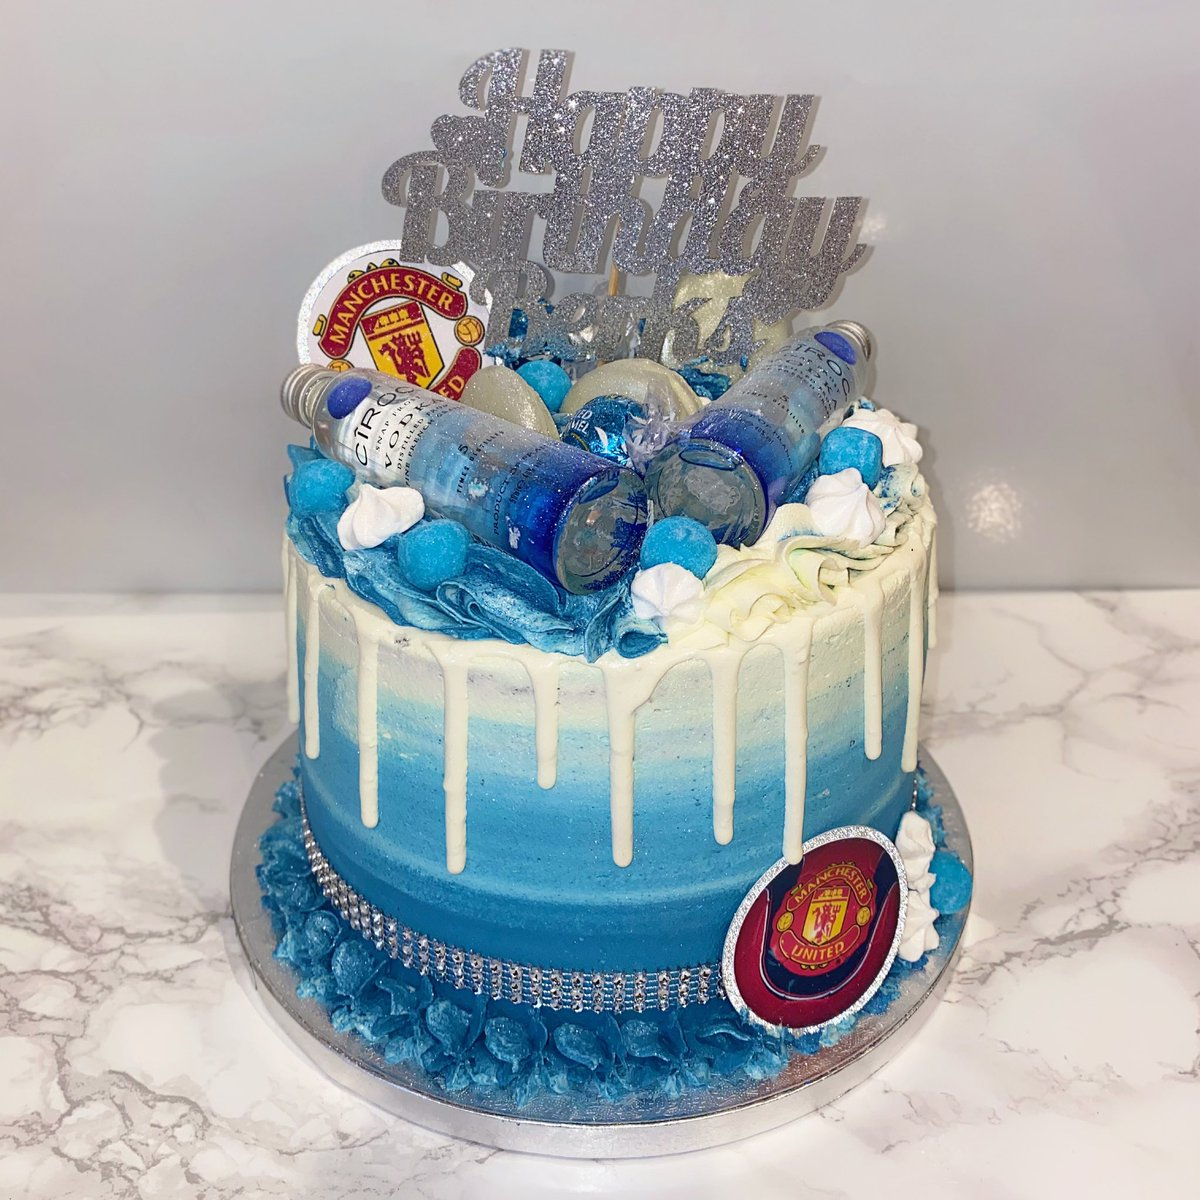 Abbie S Angelcakes On Twitter Ciroc X Jelly Shot Drip Cake Money Pull Out Effect Worked Wonderfully Once Again